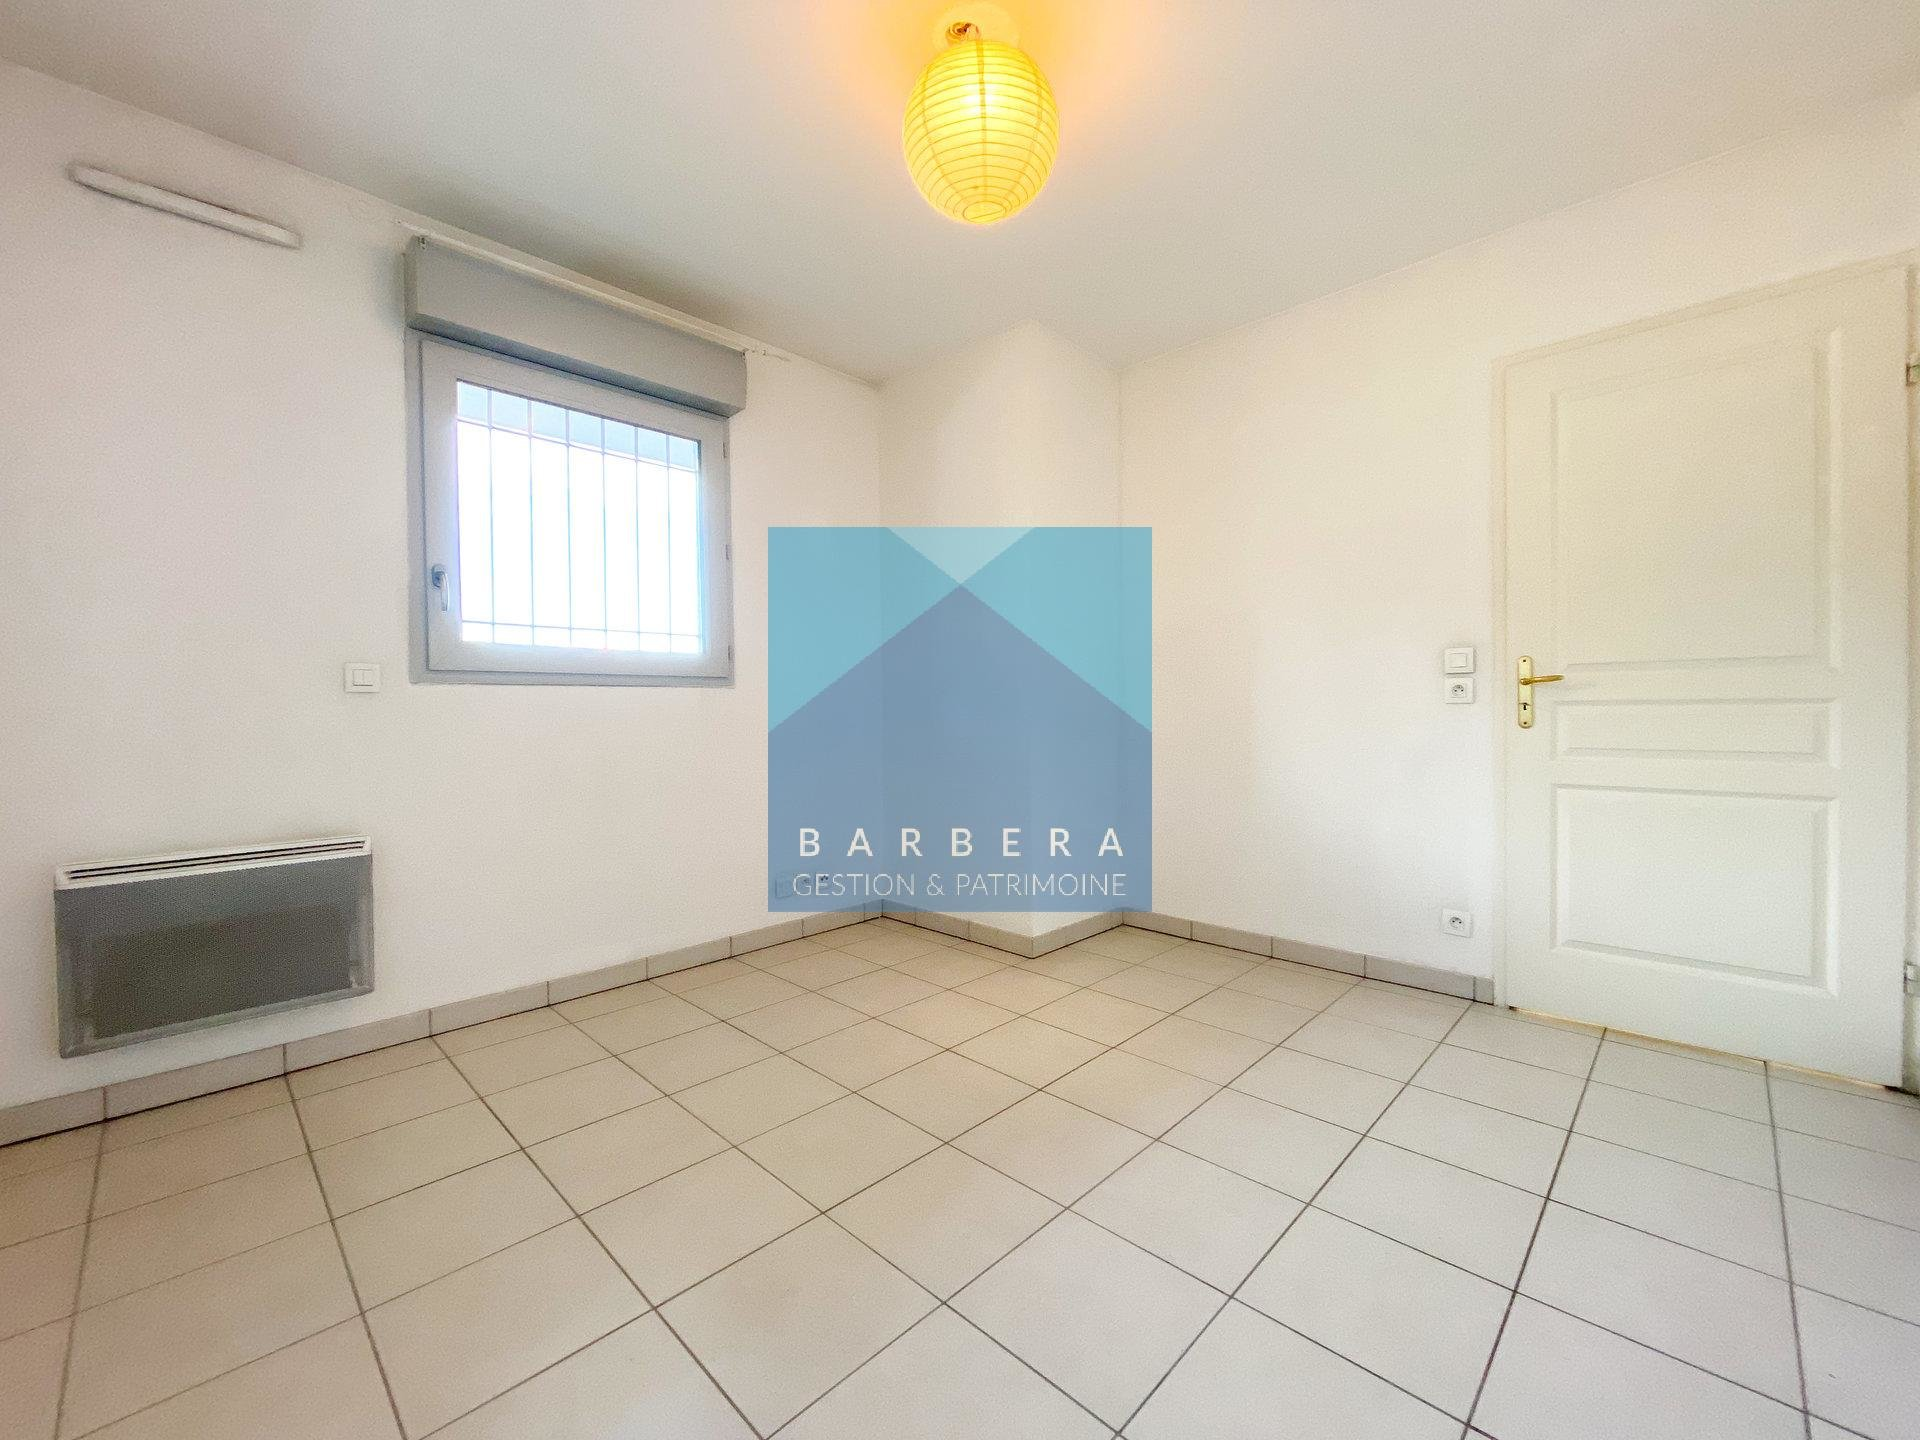 Location appartement 39 m²